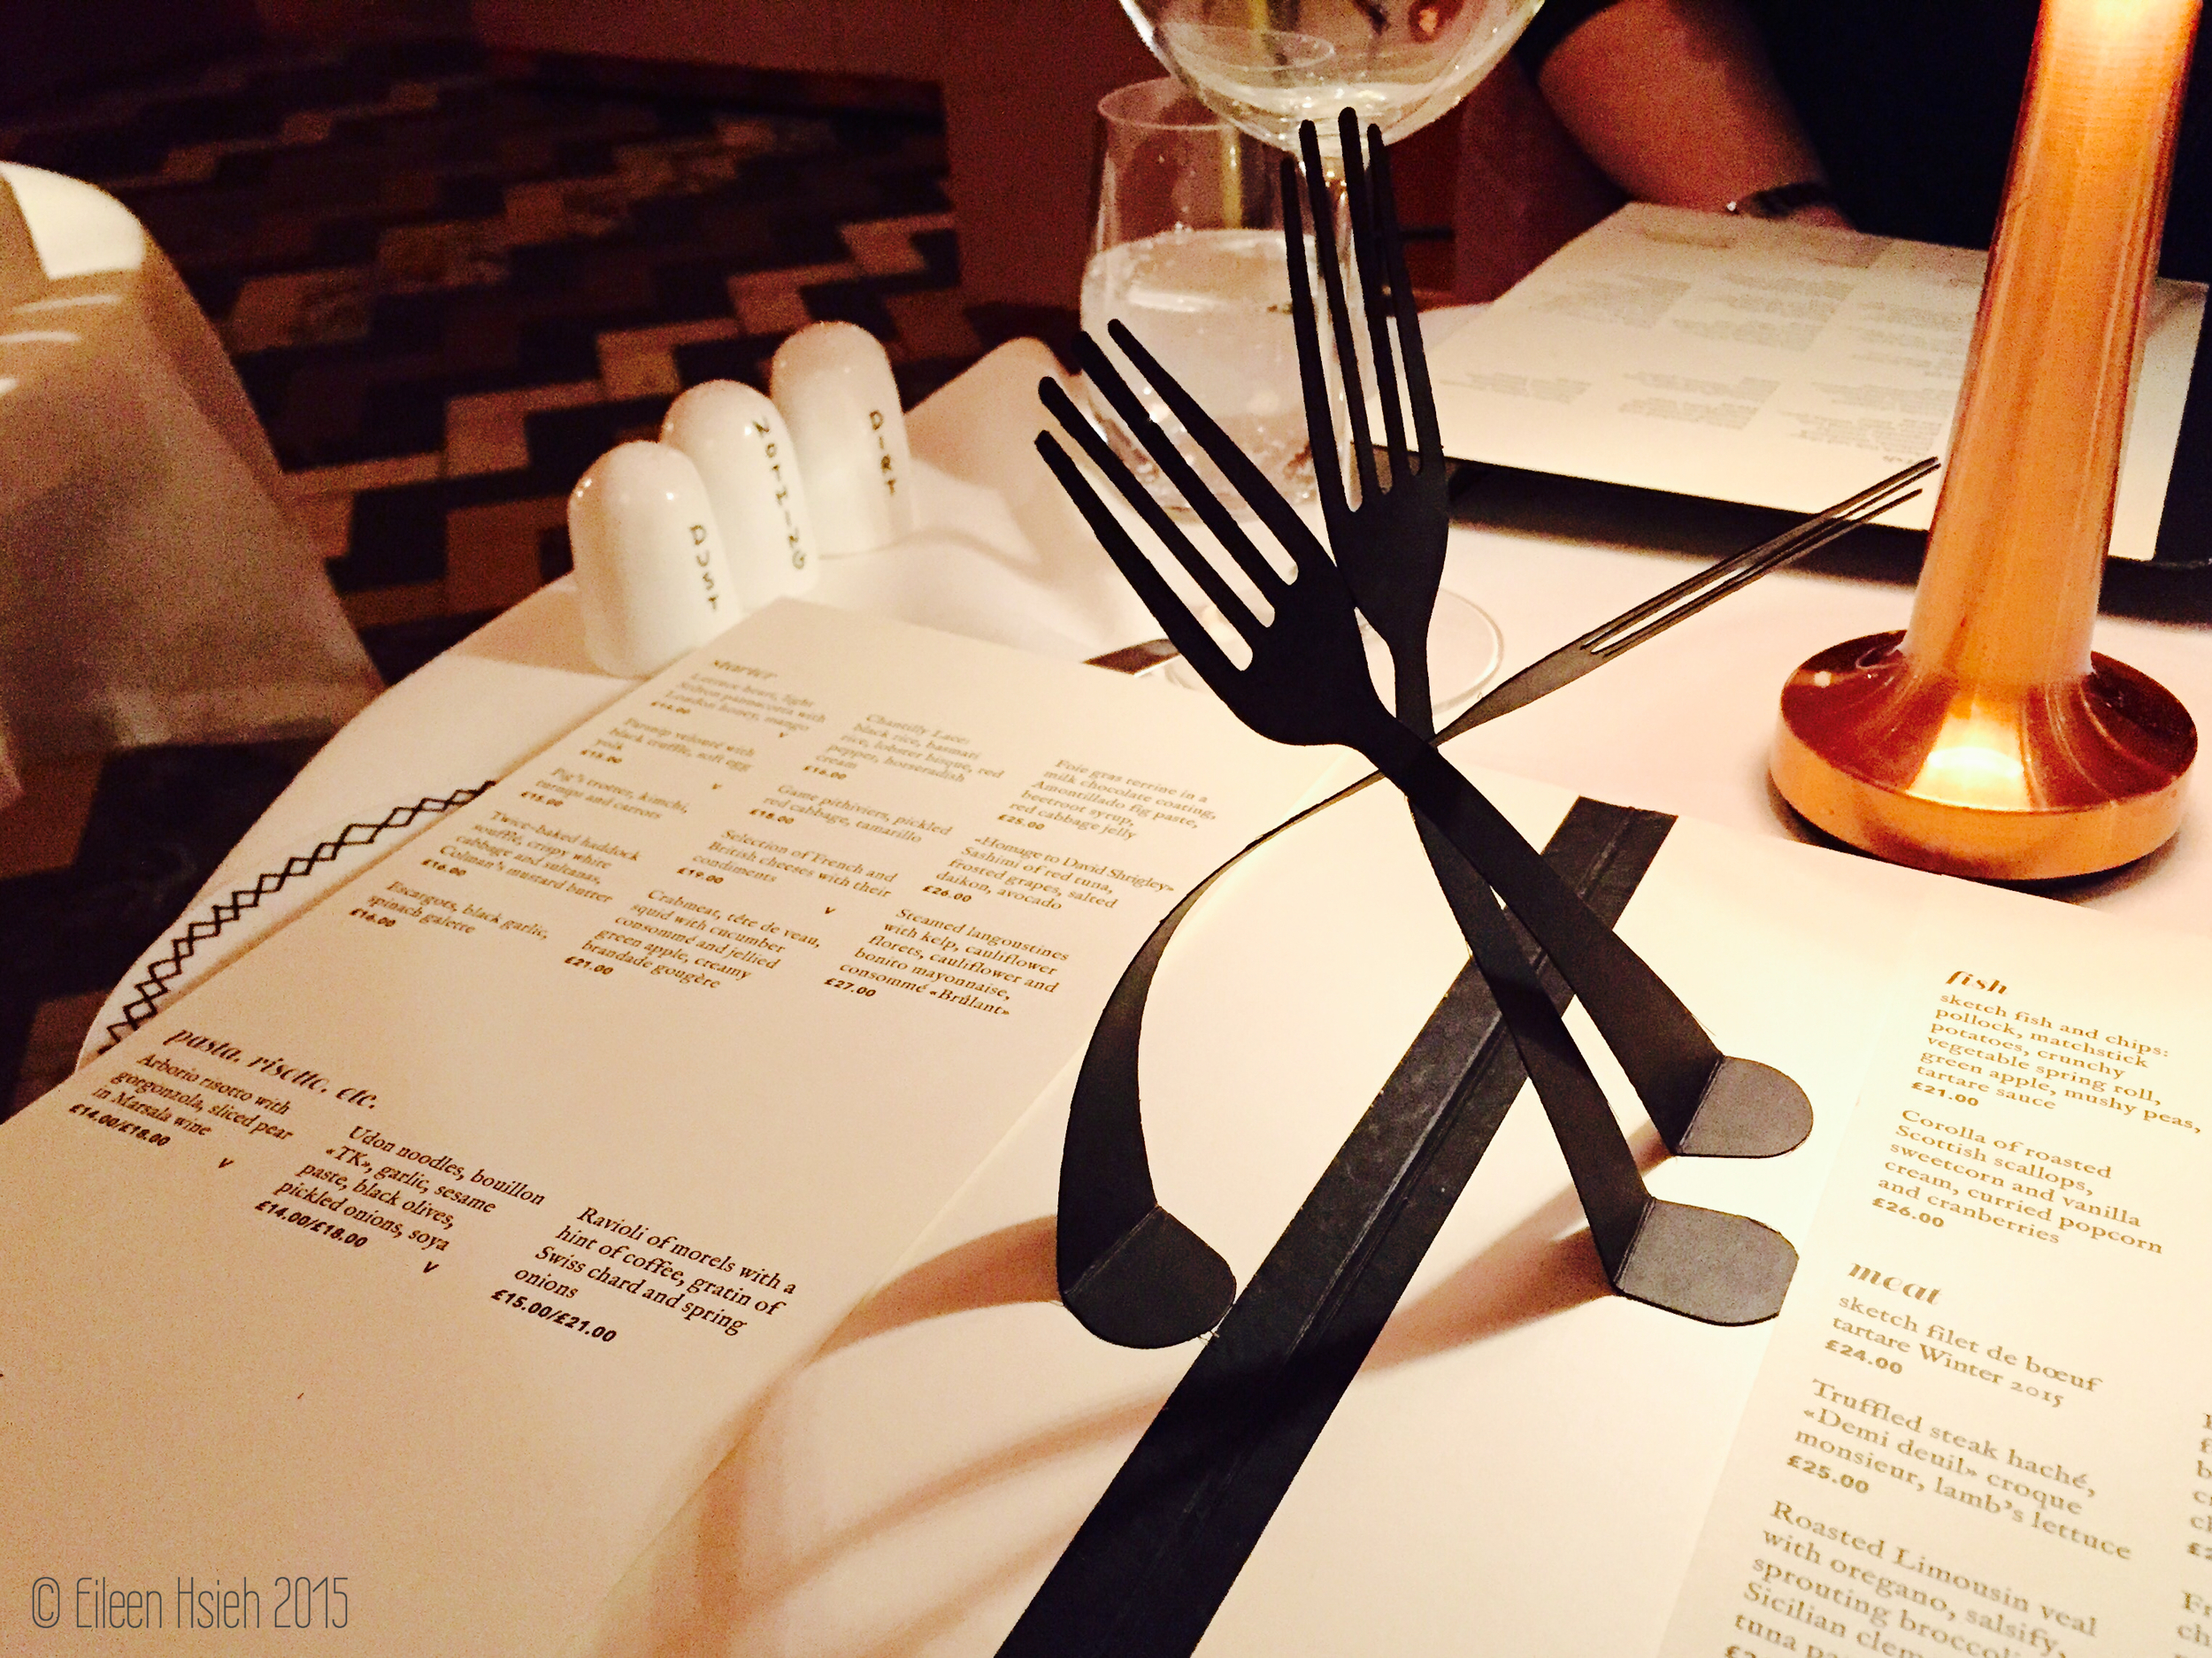 Paper forks are onthe menu too. 菜單一打開就跳出來可愛的紙刀叉。   © Eileen Hsieh